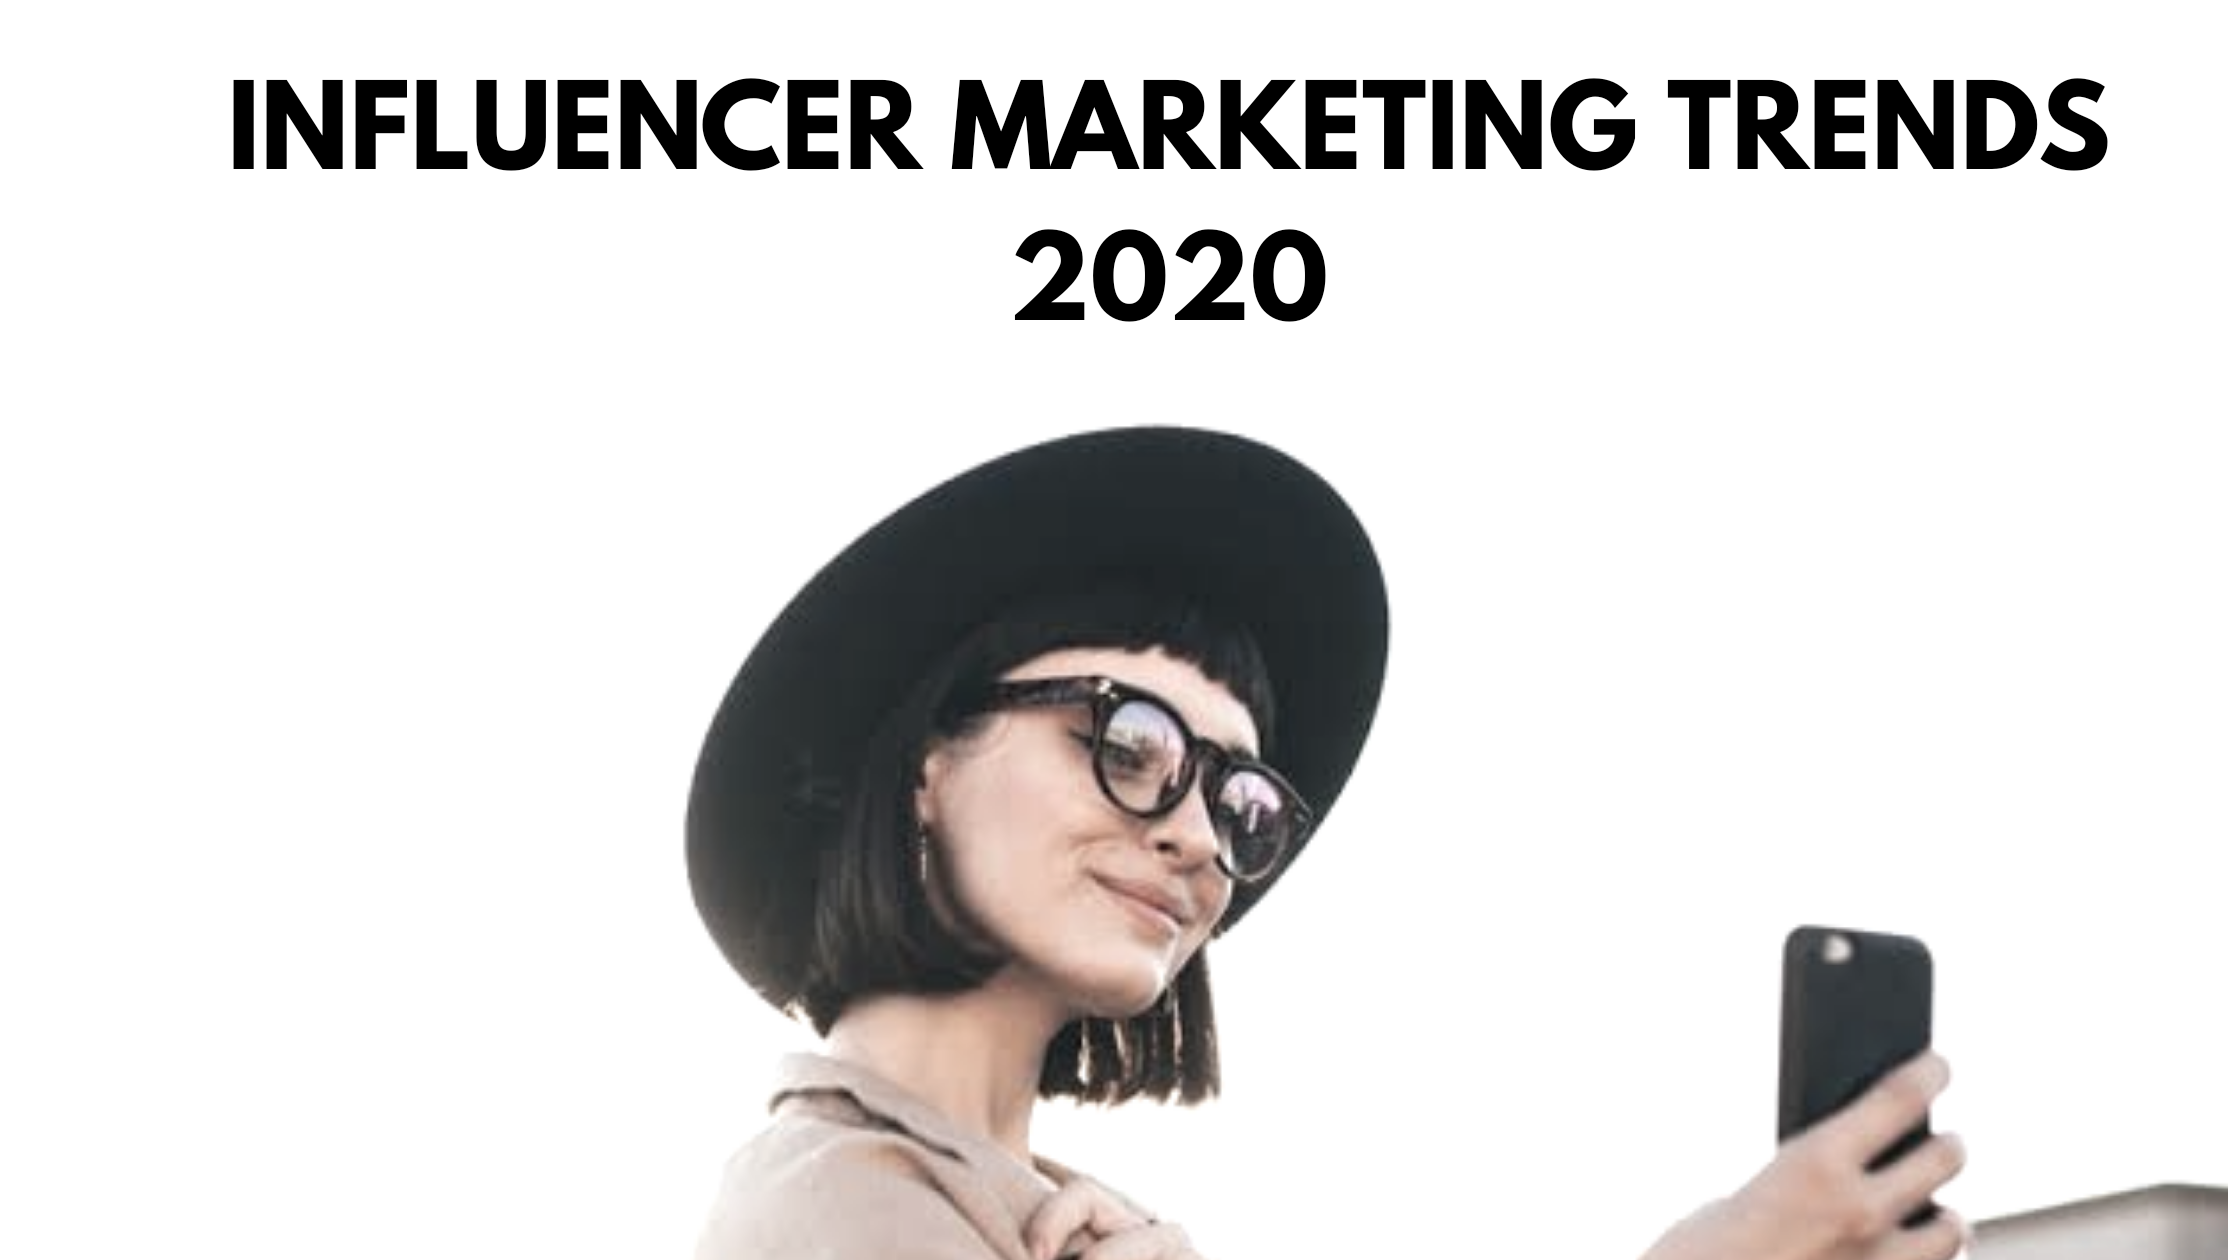 Influencer Marketing in 2020